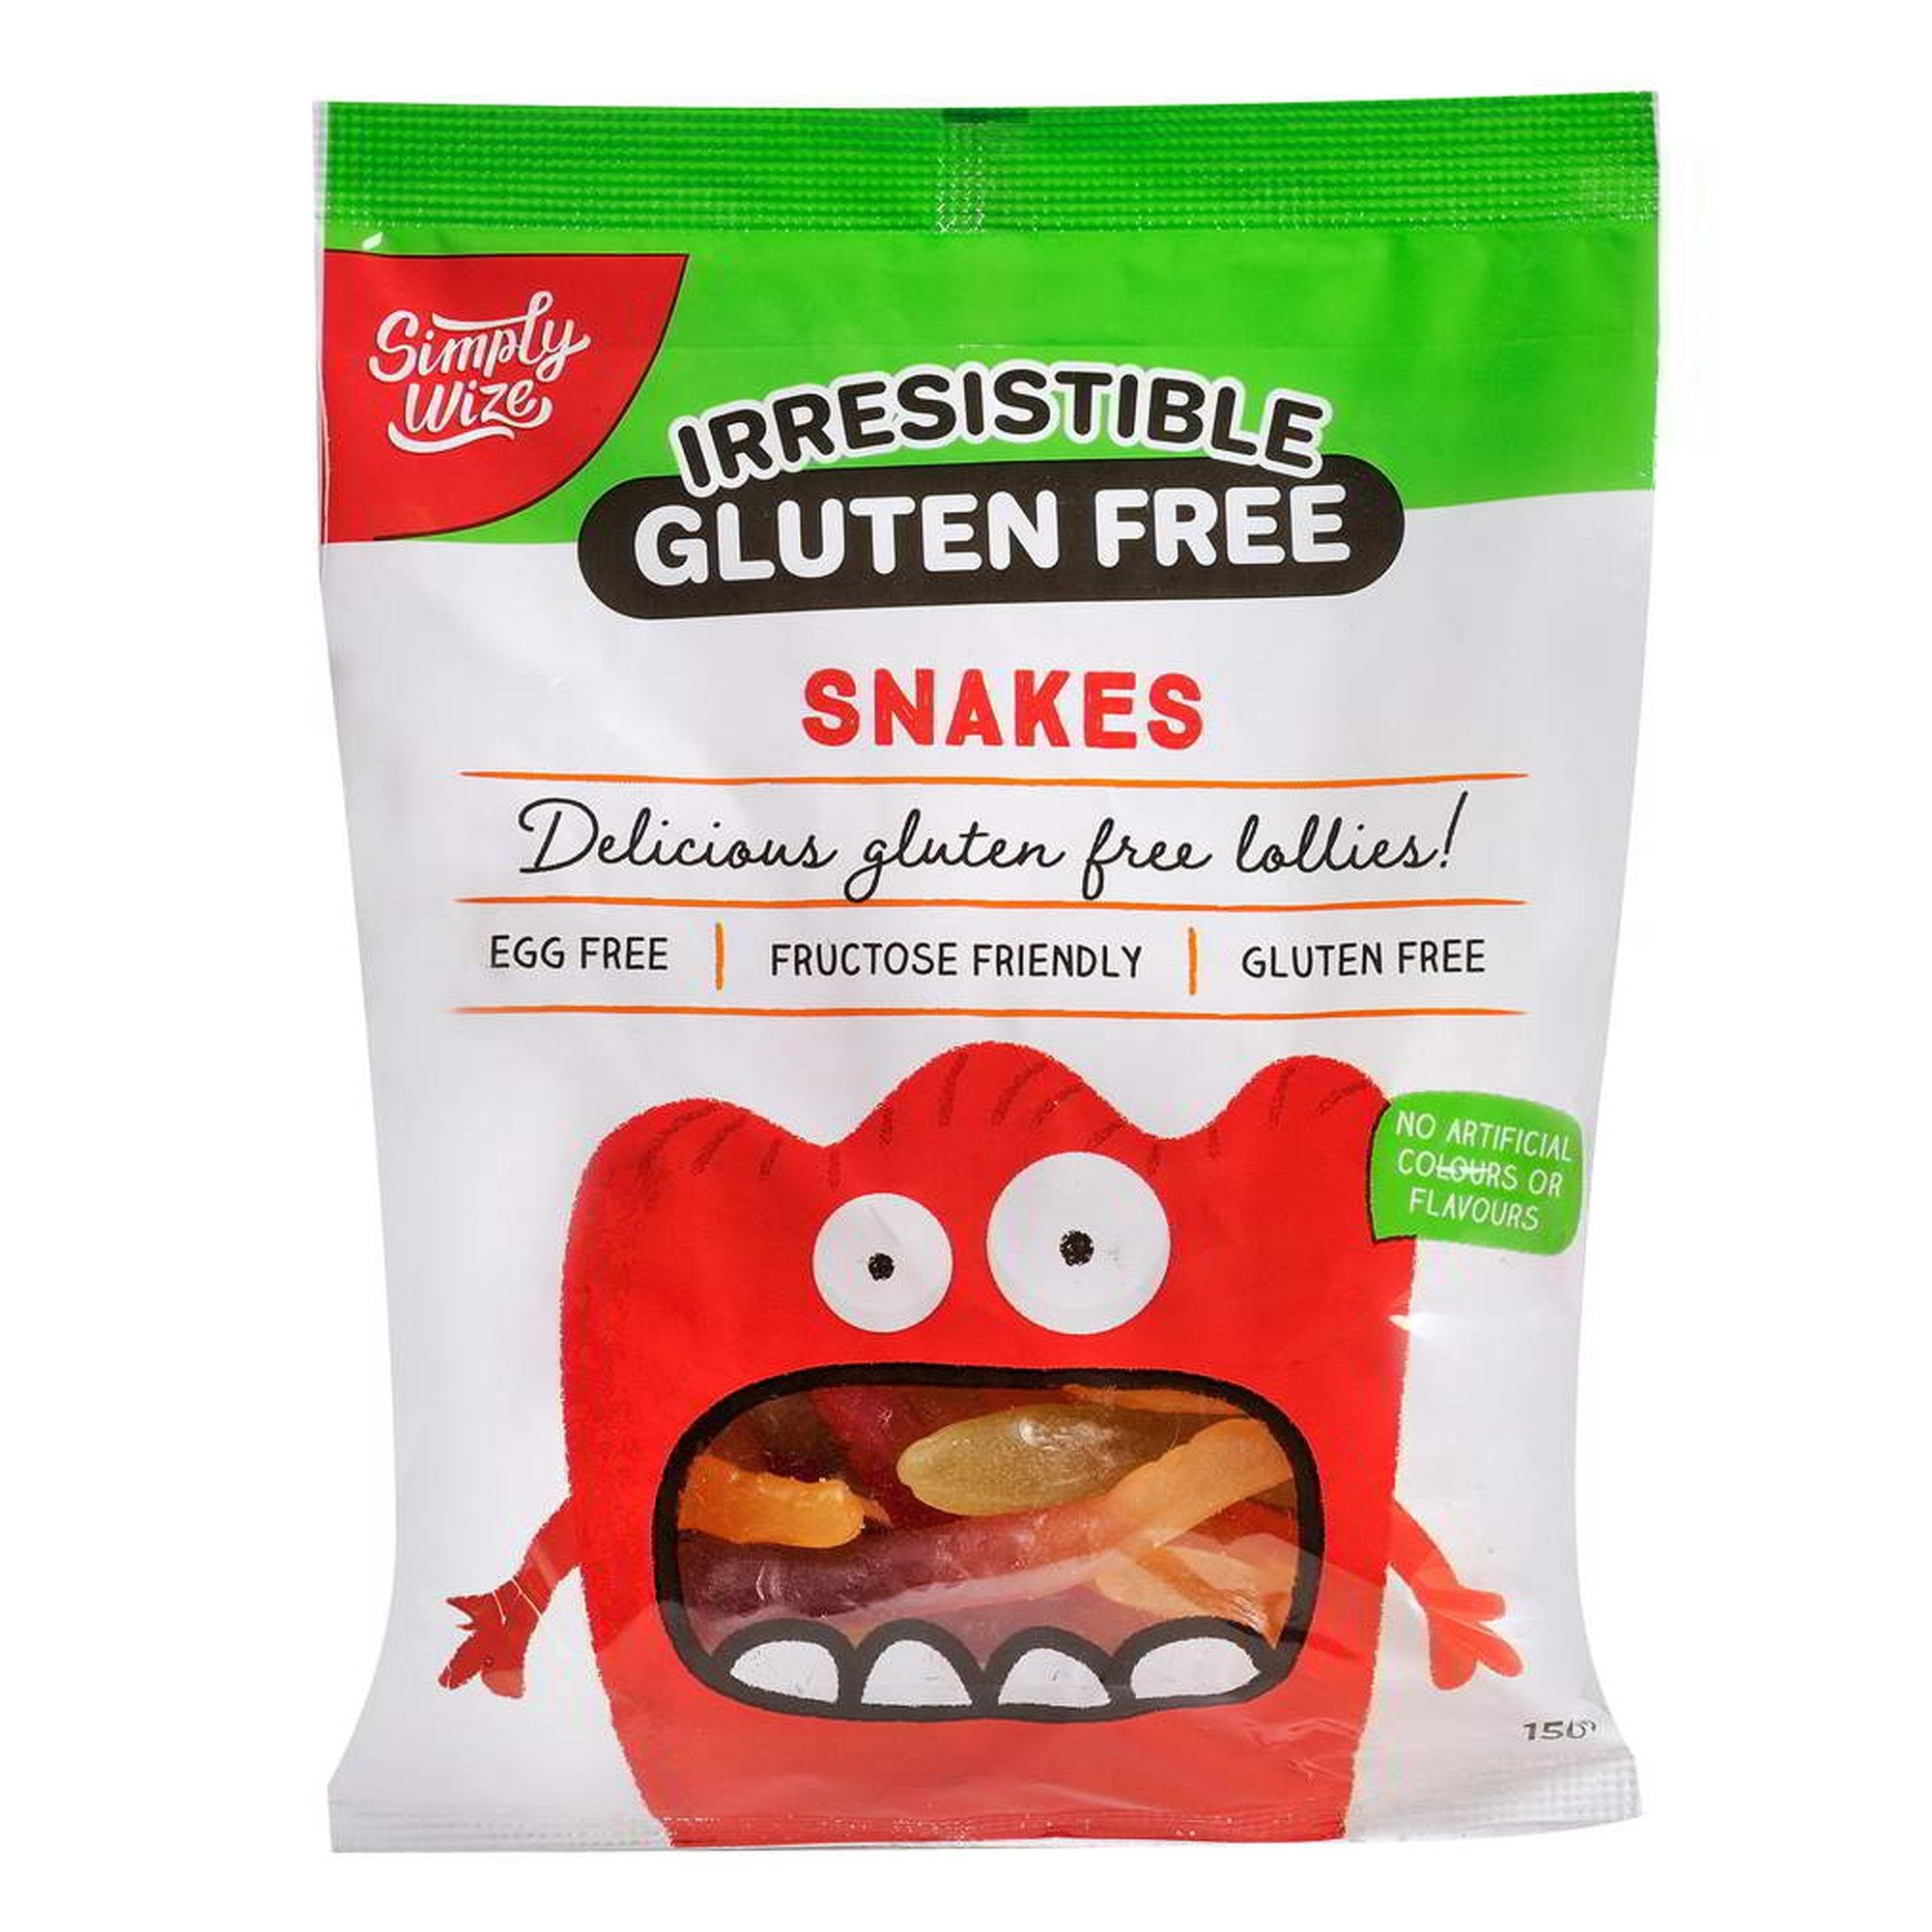 Simply Wize Irresistible Snakes 150g